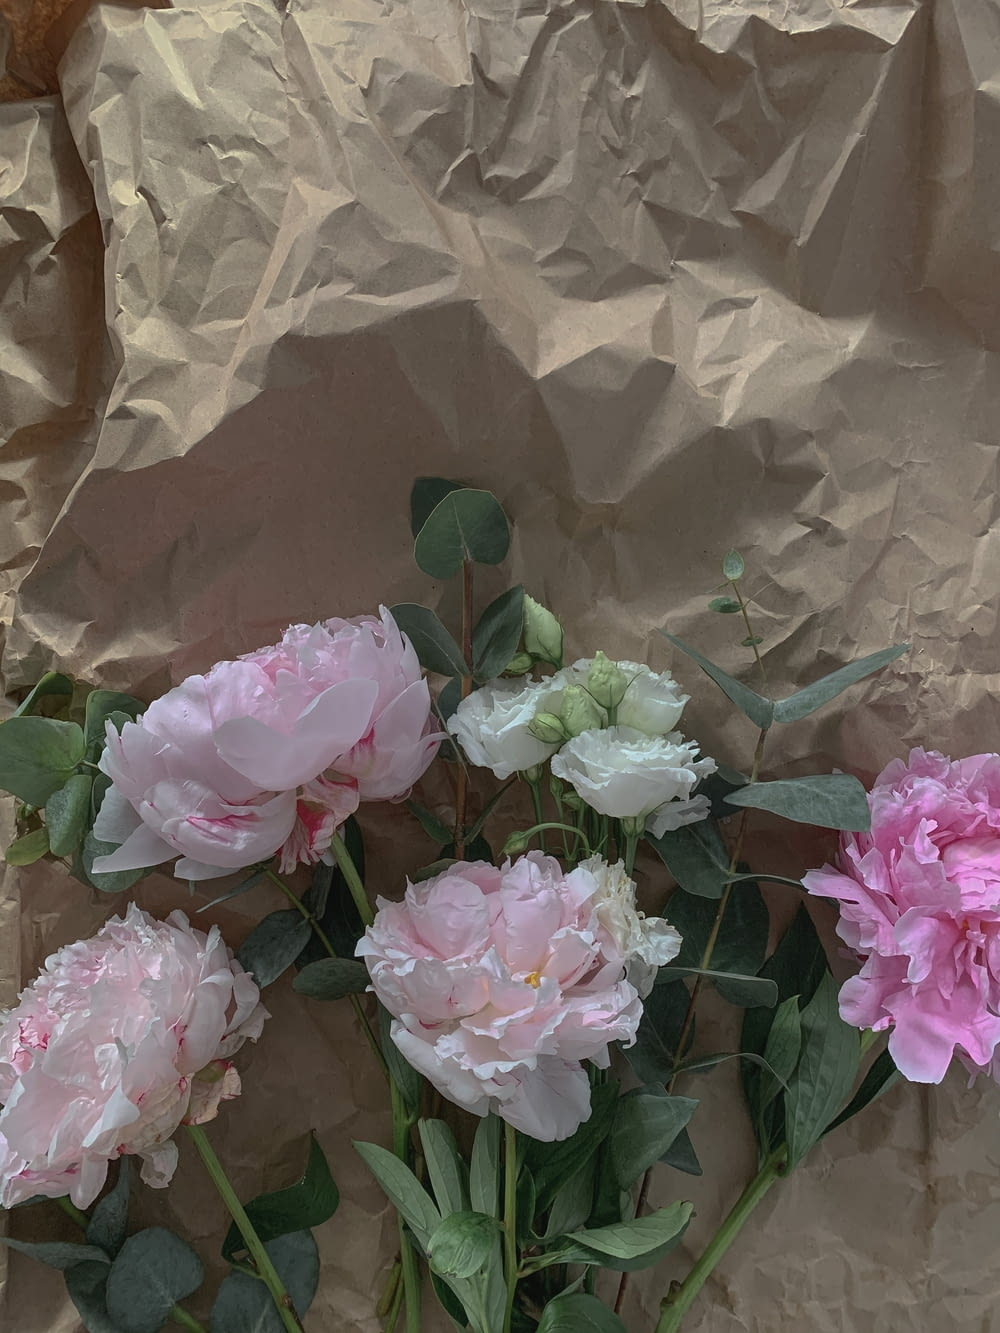 pink roses on brown plastic bag